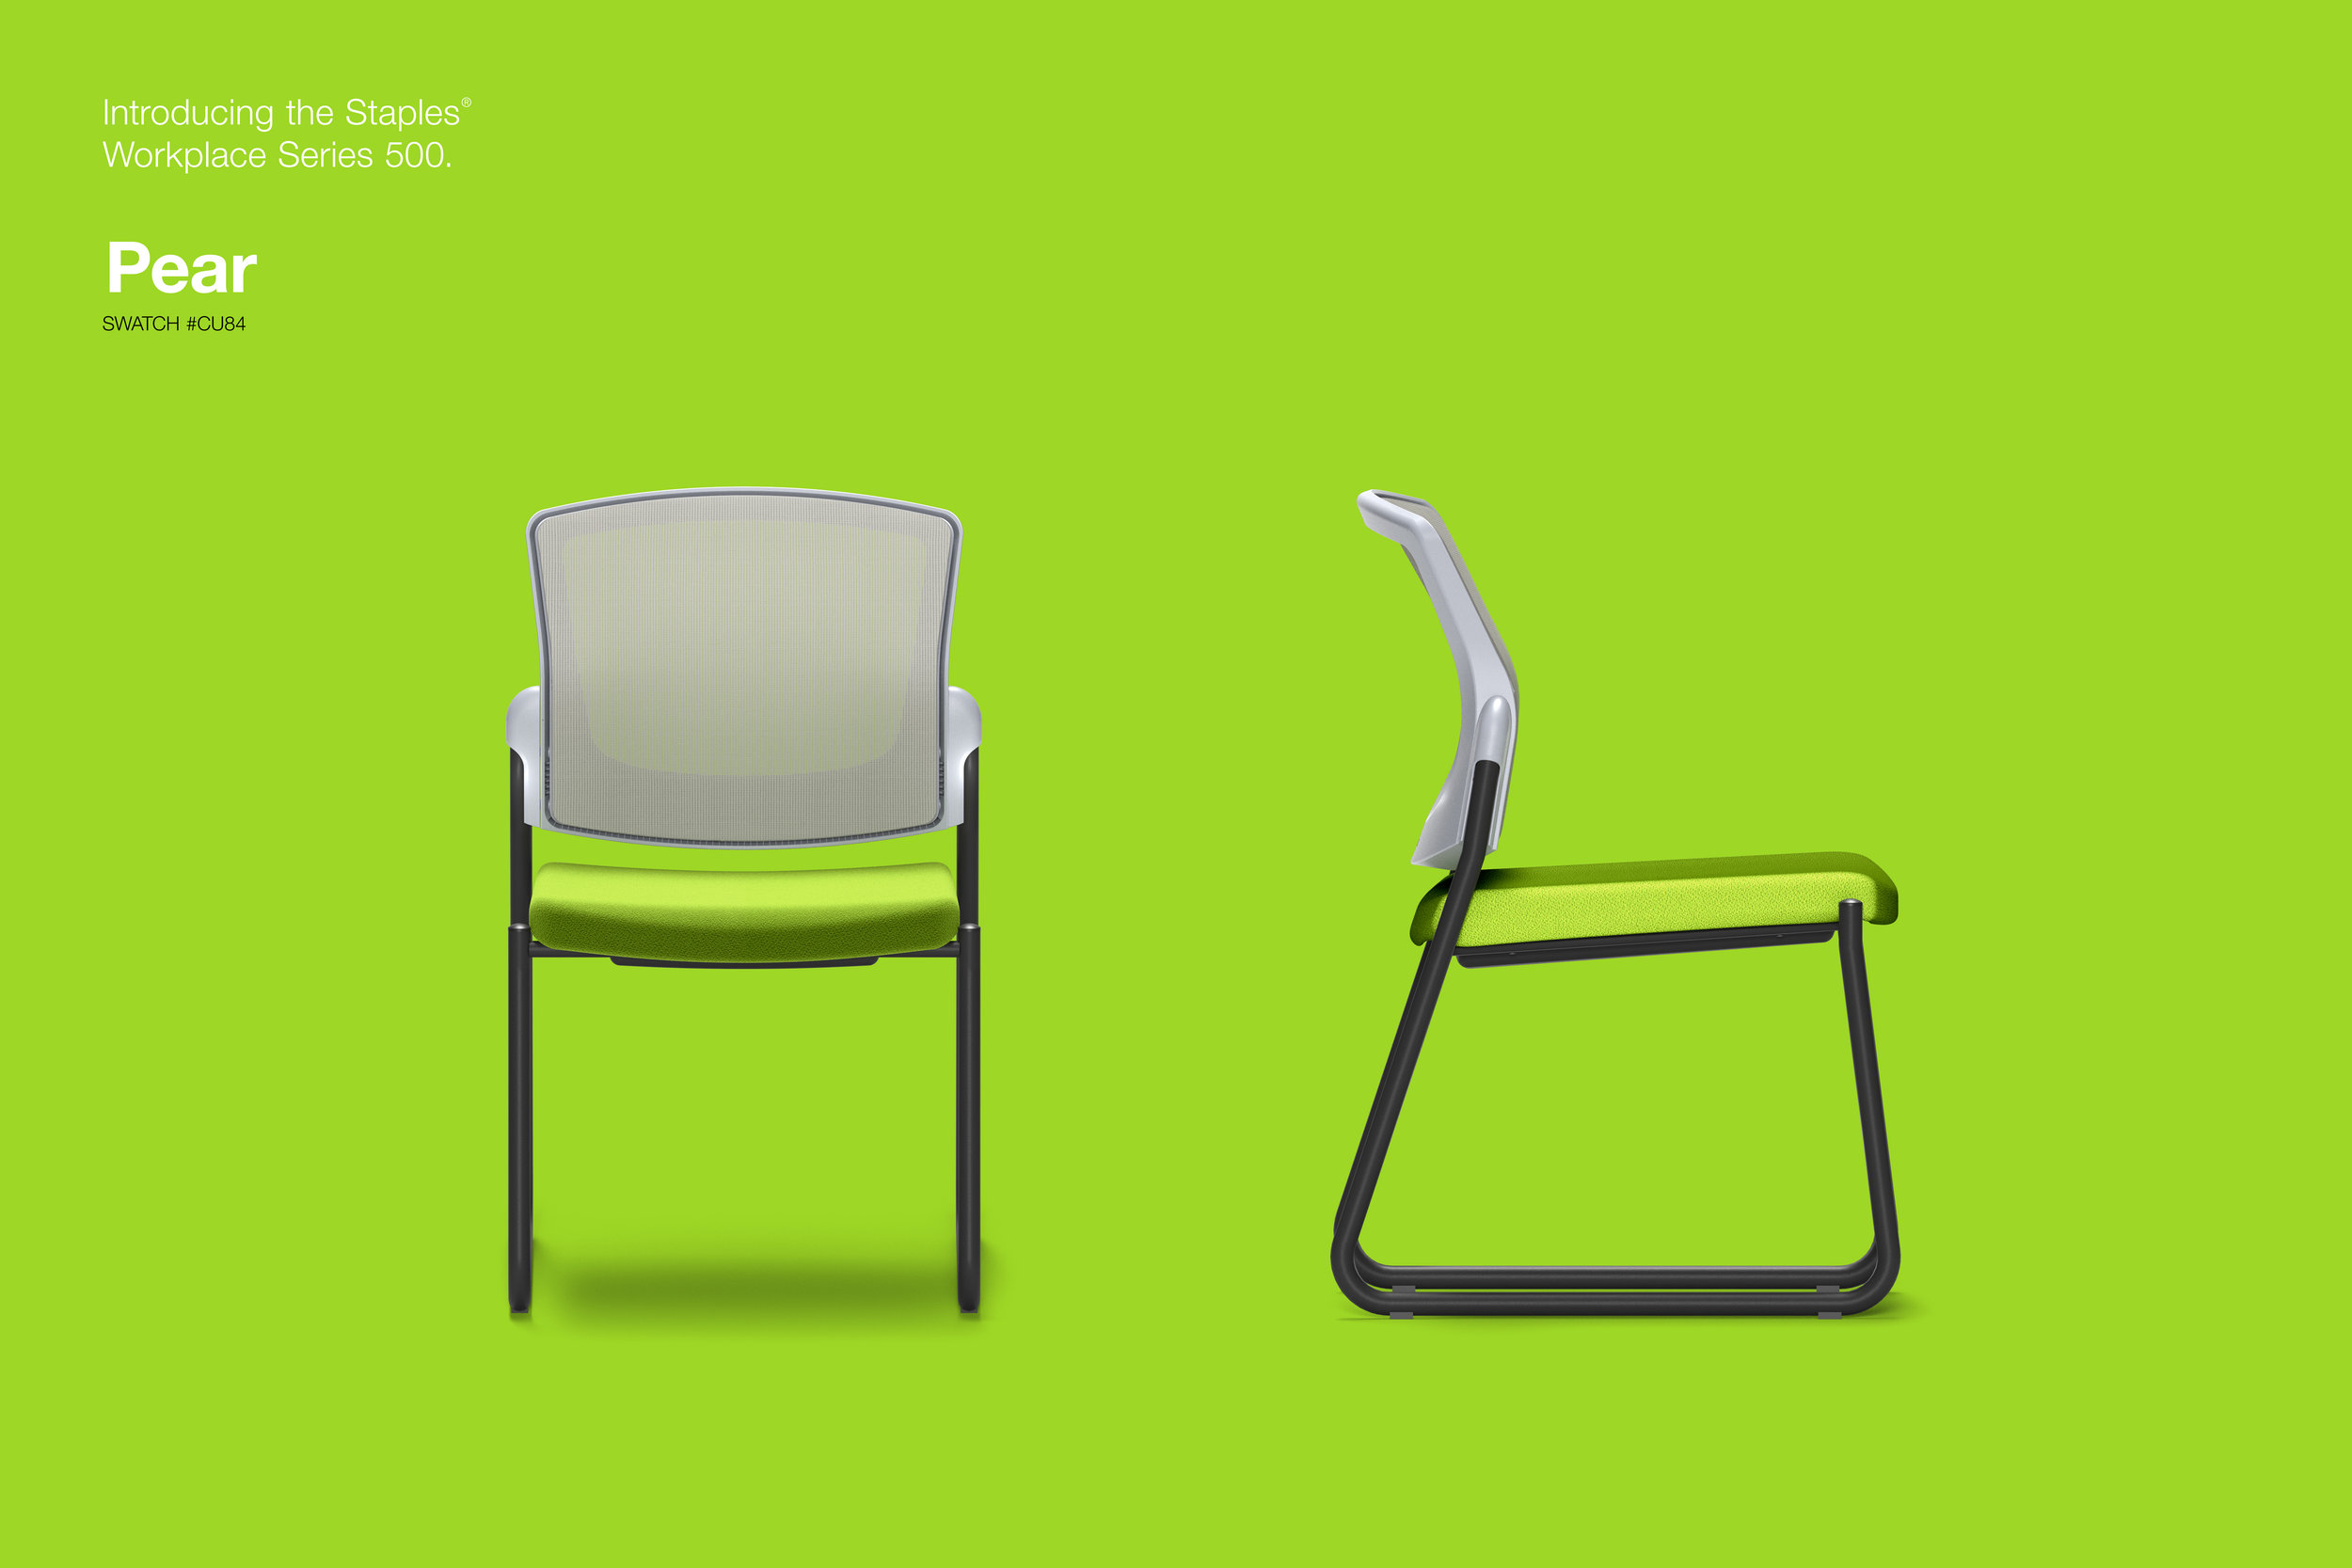 01_Staples-Workplace-Series-Guest-Chair-Pear.jpg